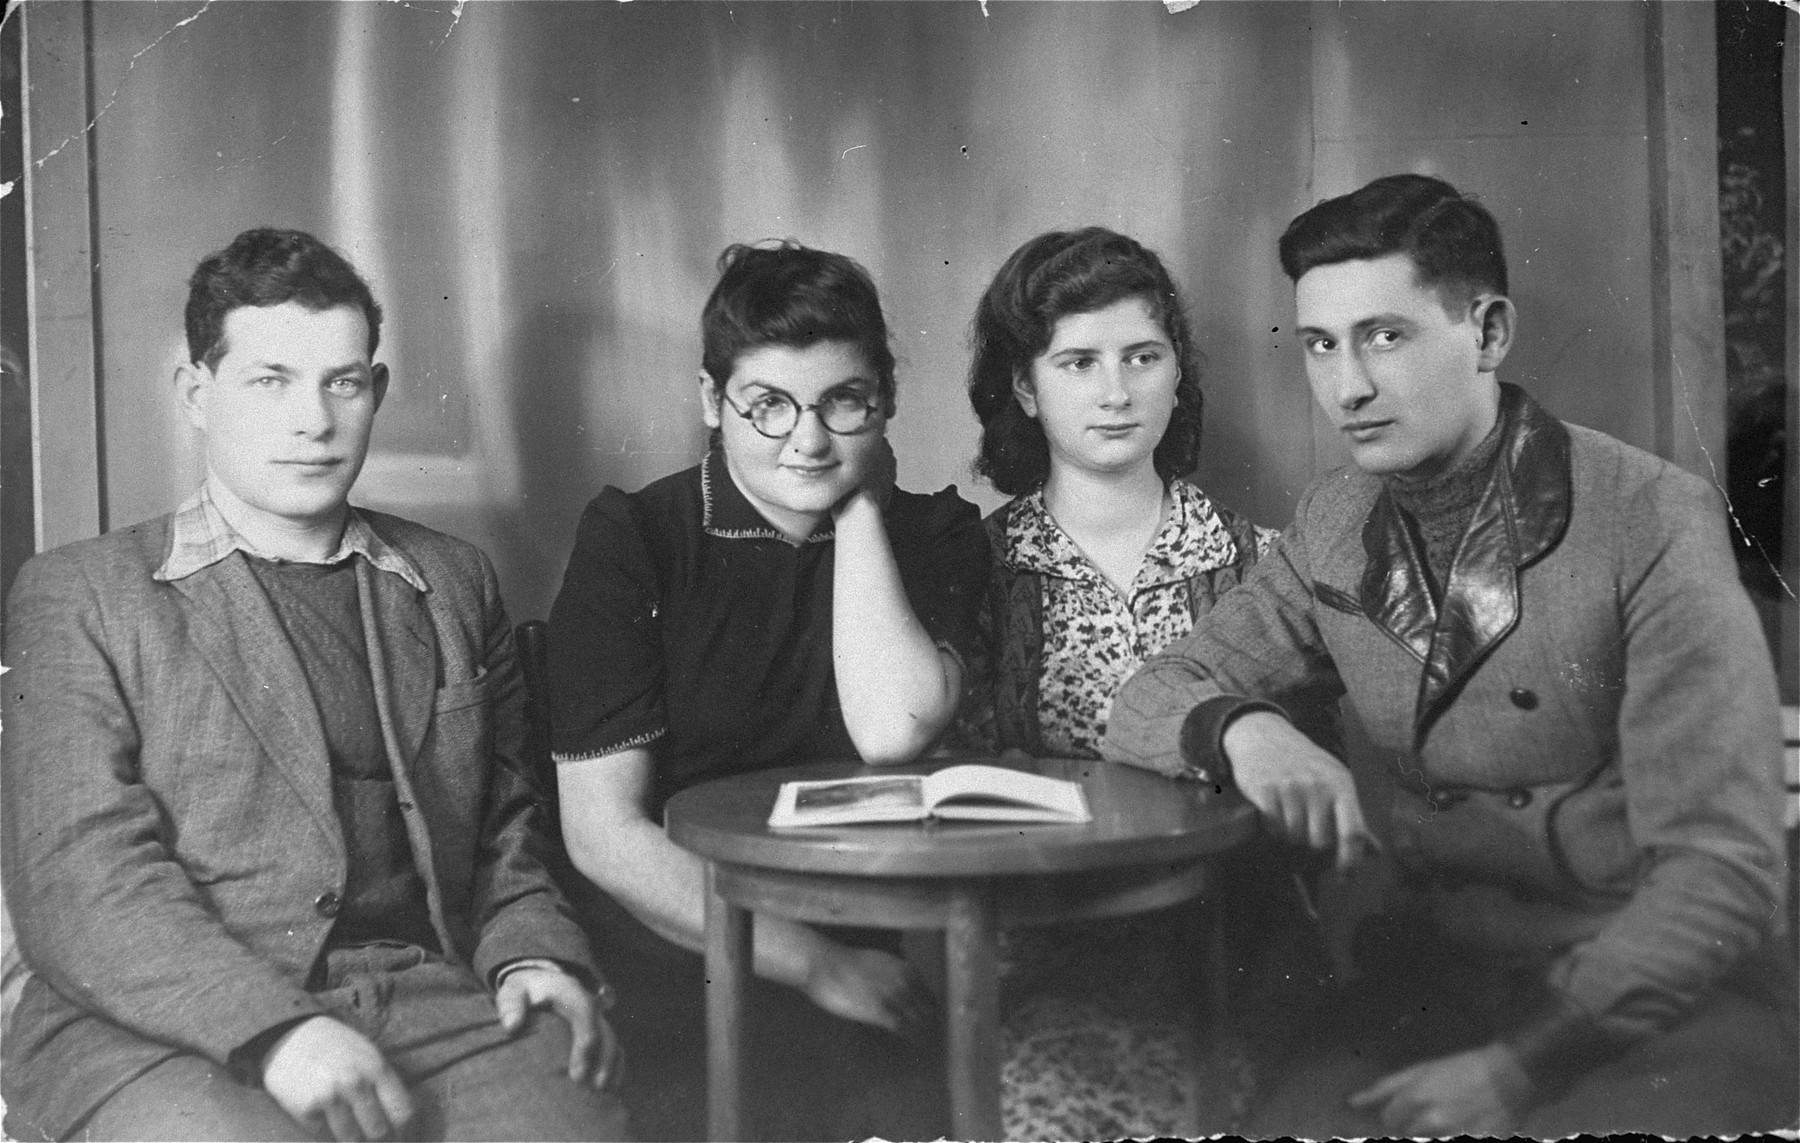 Four members of the Hashomer Hatzair Zionist collective in Zarki are seated around a table.  Pictured from left to right are: Aron Szwarc, Tamar (last name unknown), Lodzia Hamersztajn, and Berel Lemel.